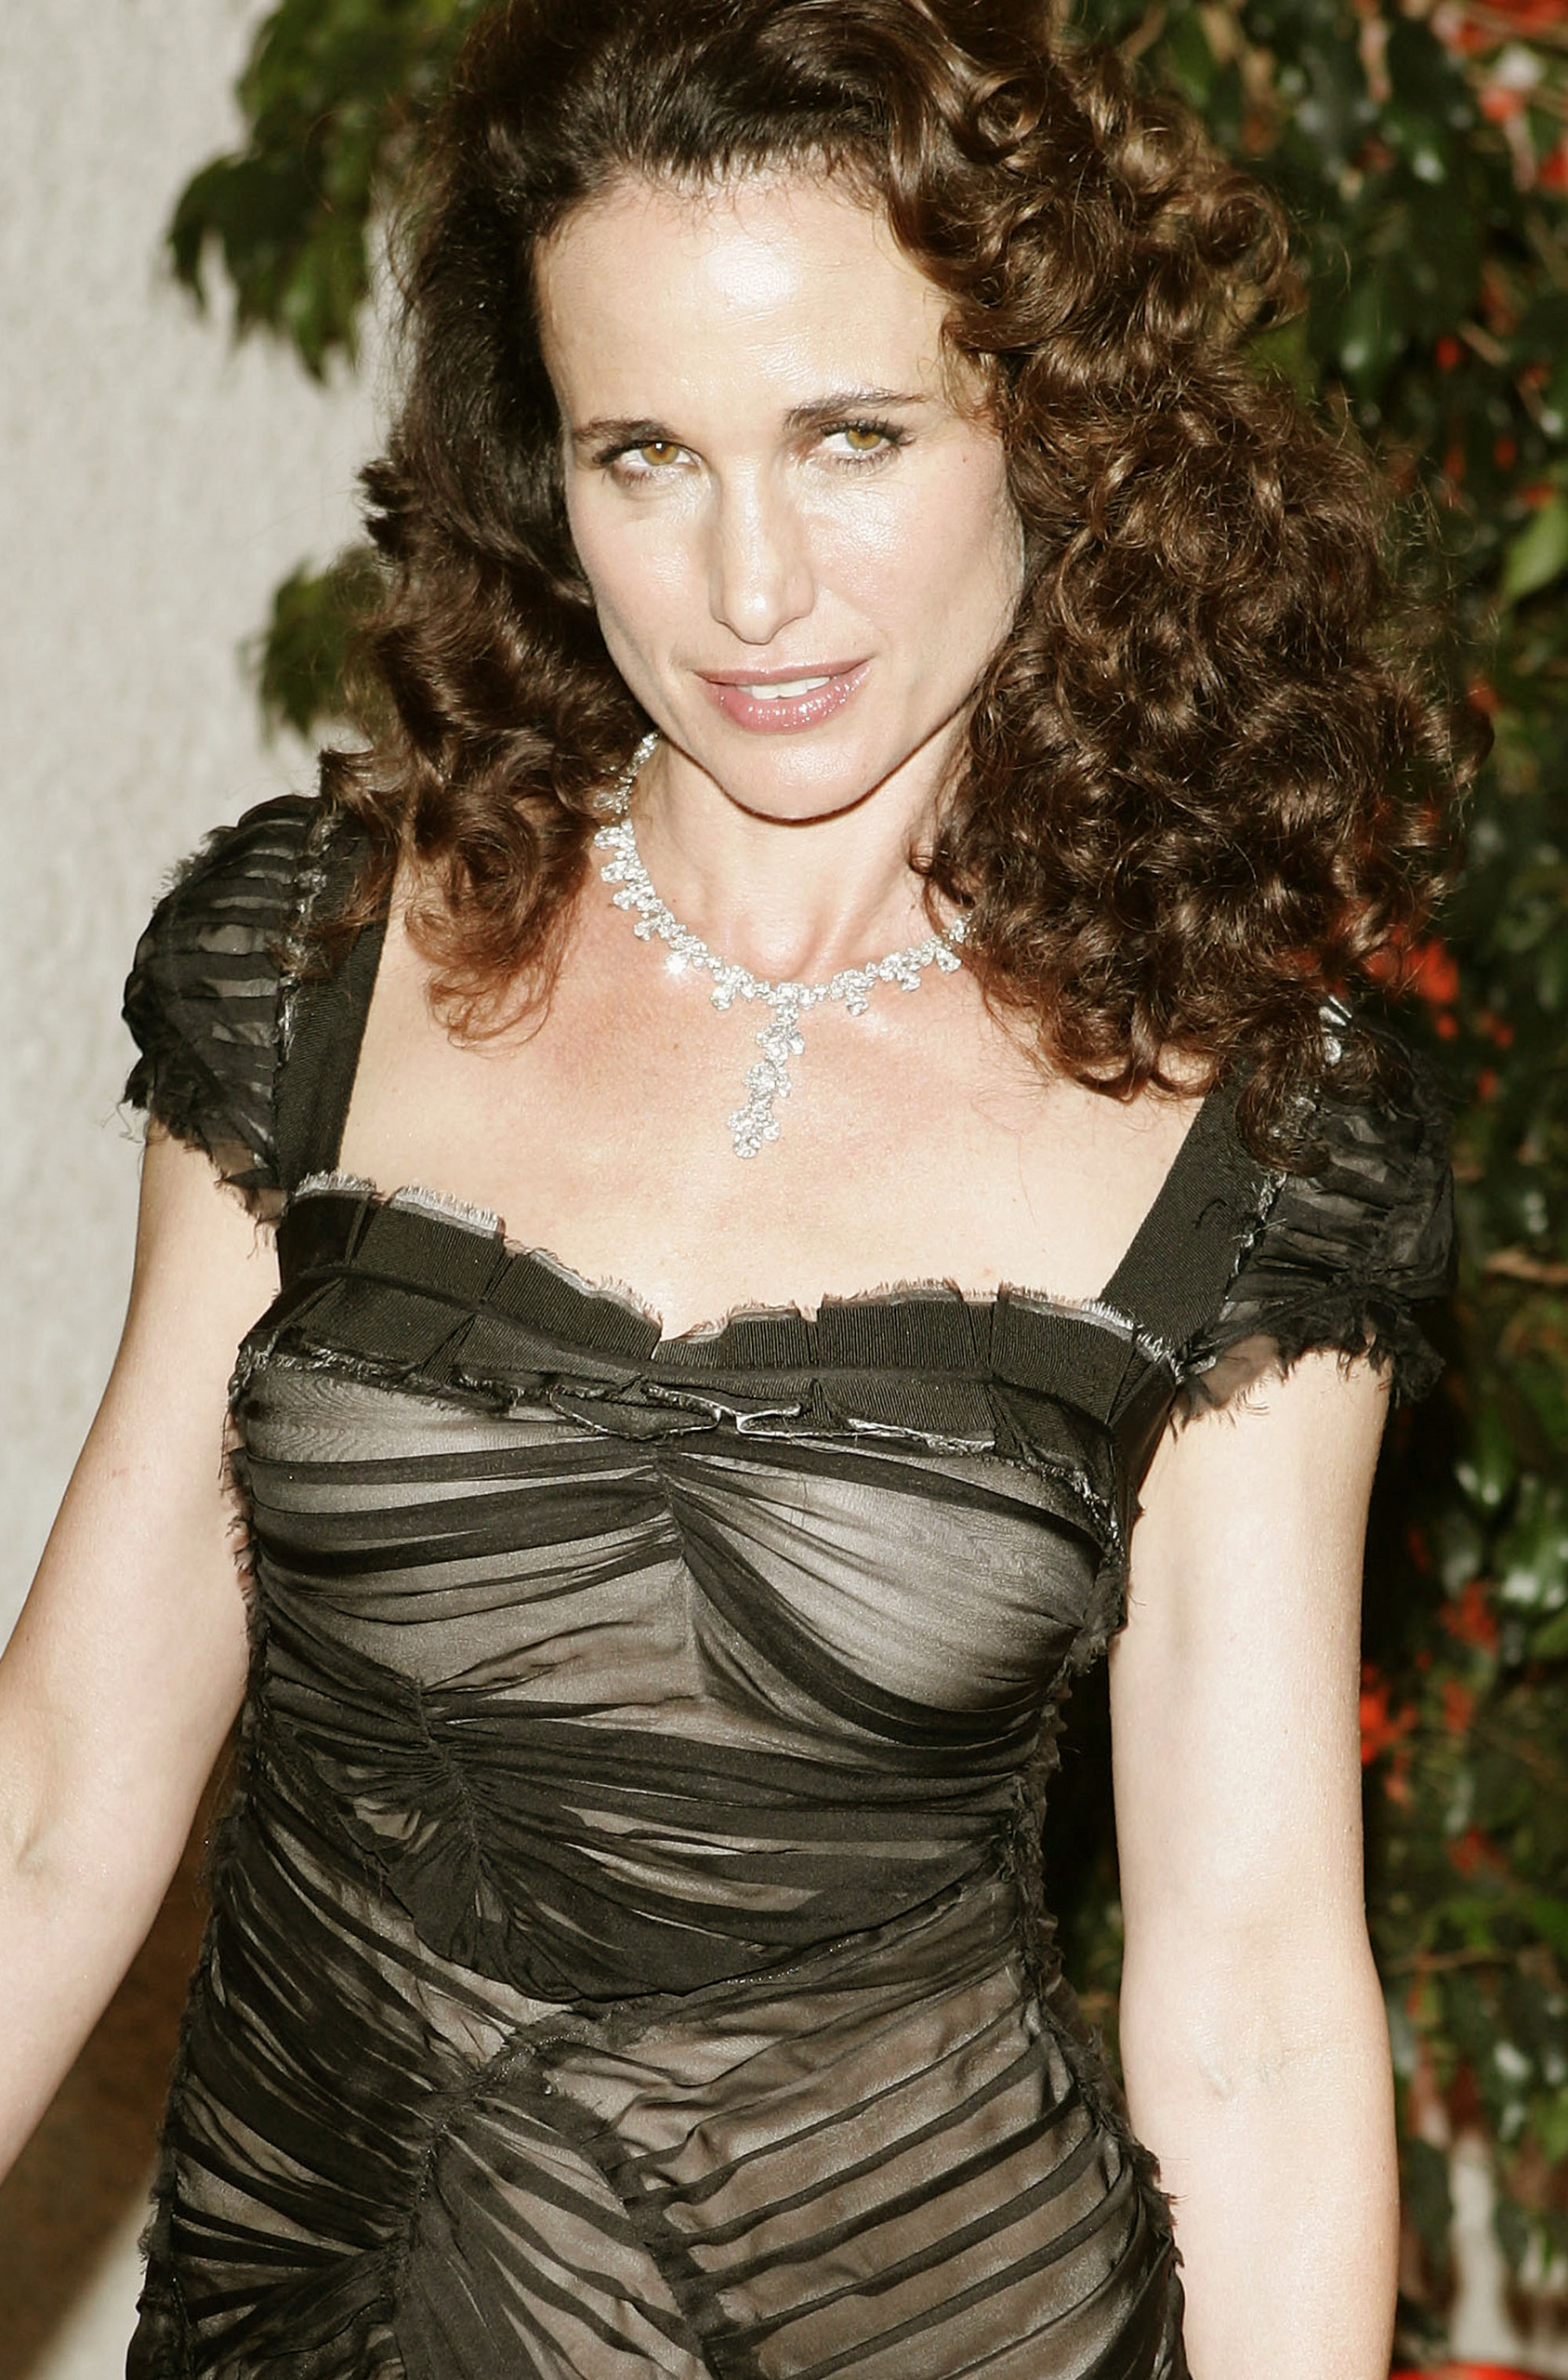 Andie MacDowell naked (74 fotos), images Sideboobs, YouTube, bra 2015